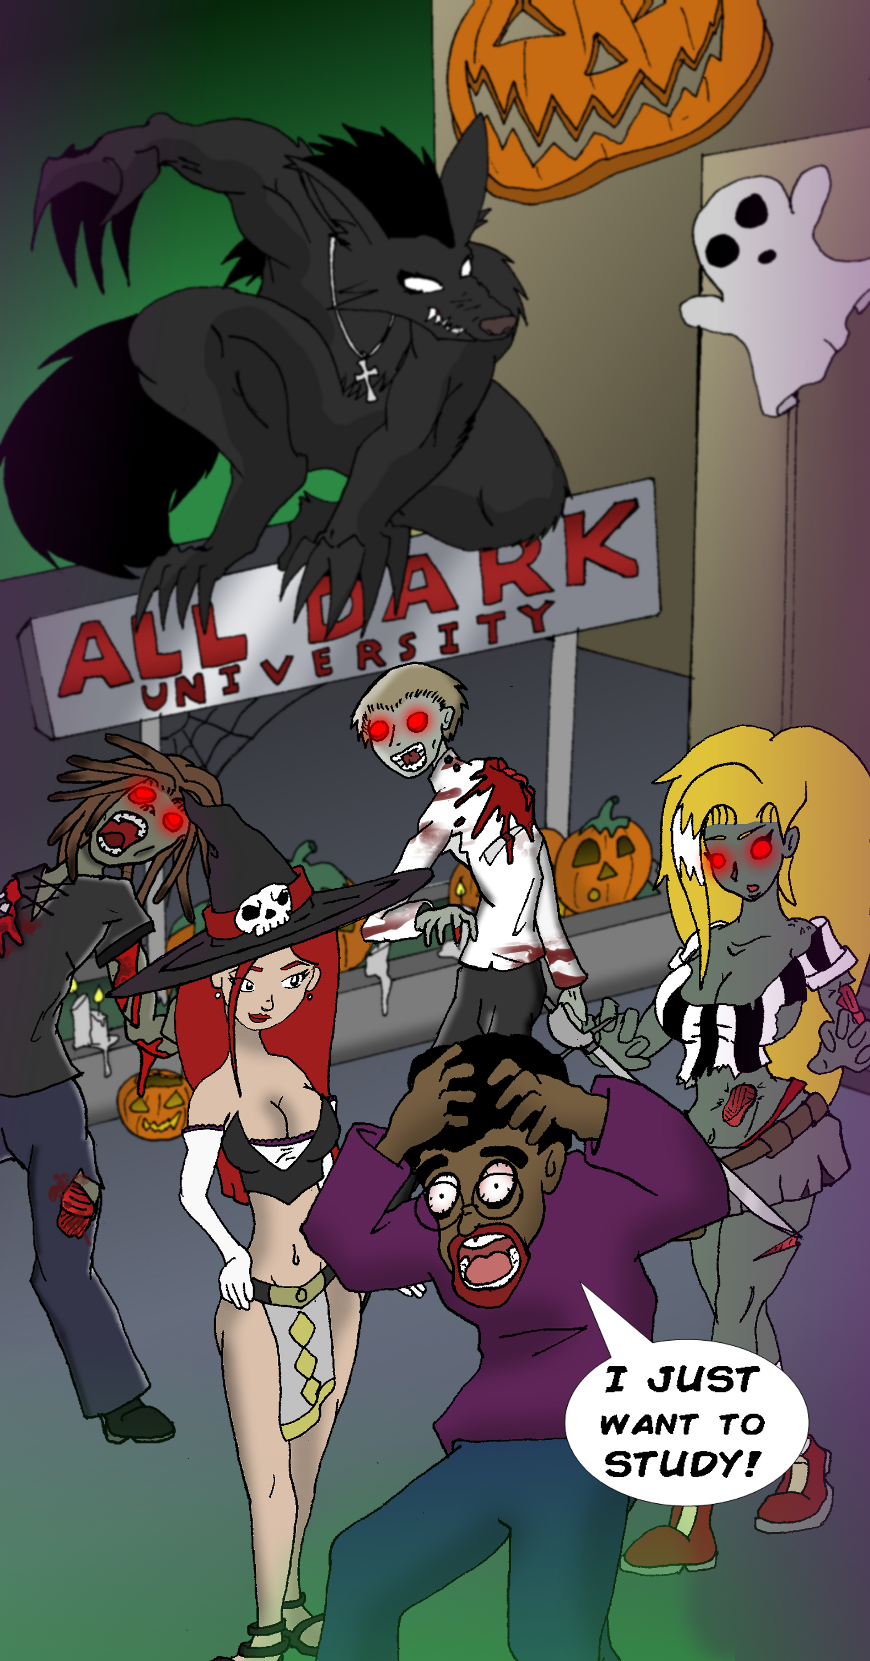 All Dark University by The Letter M